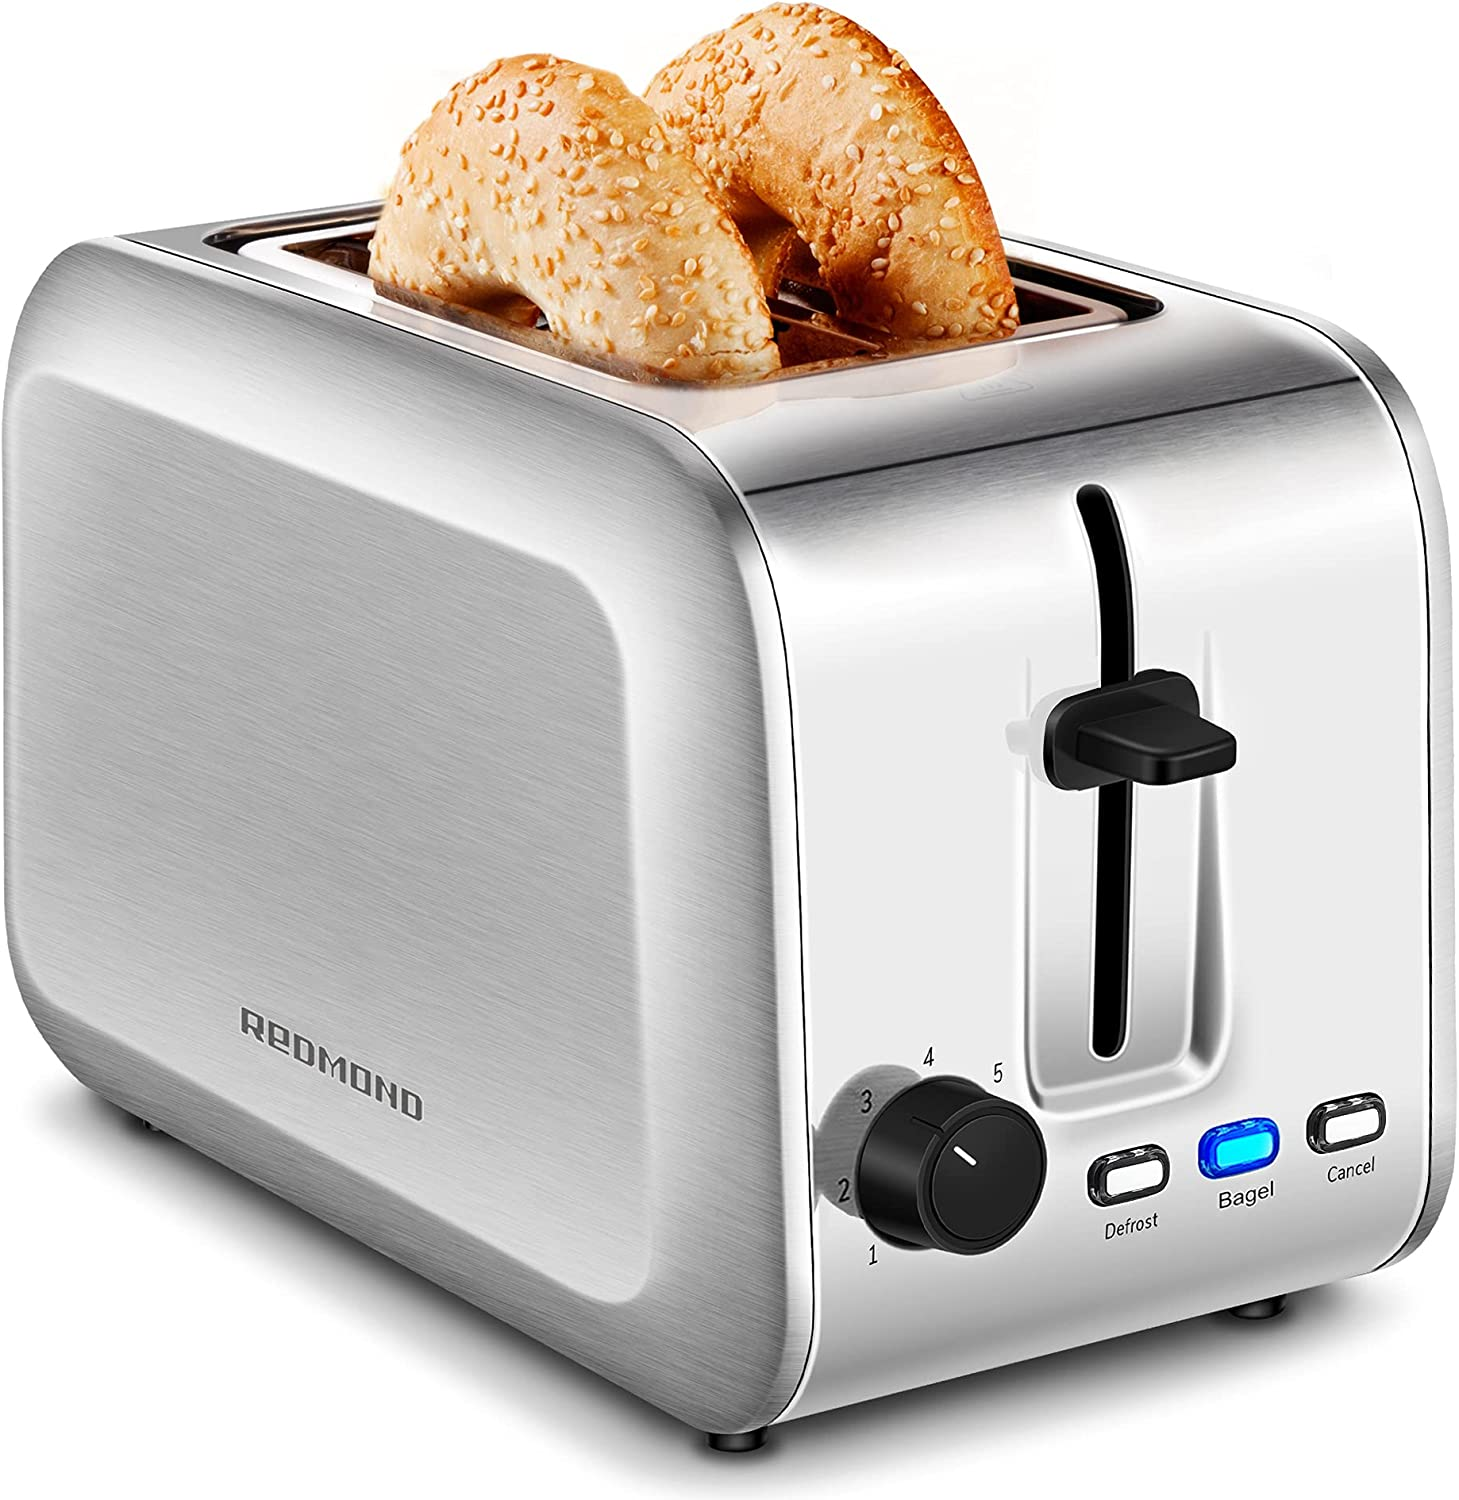 REDMOND Toaster 2 Slice, Extra Wide Slot Stainless Steel Toaster with Bagel/ Defrost/ Cancel Function, 7 Browning Settings and Removable Crumb Tray, ST213